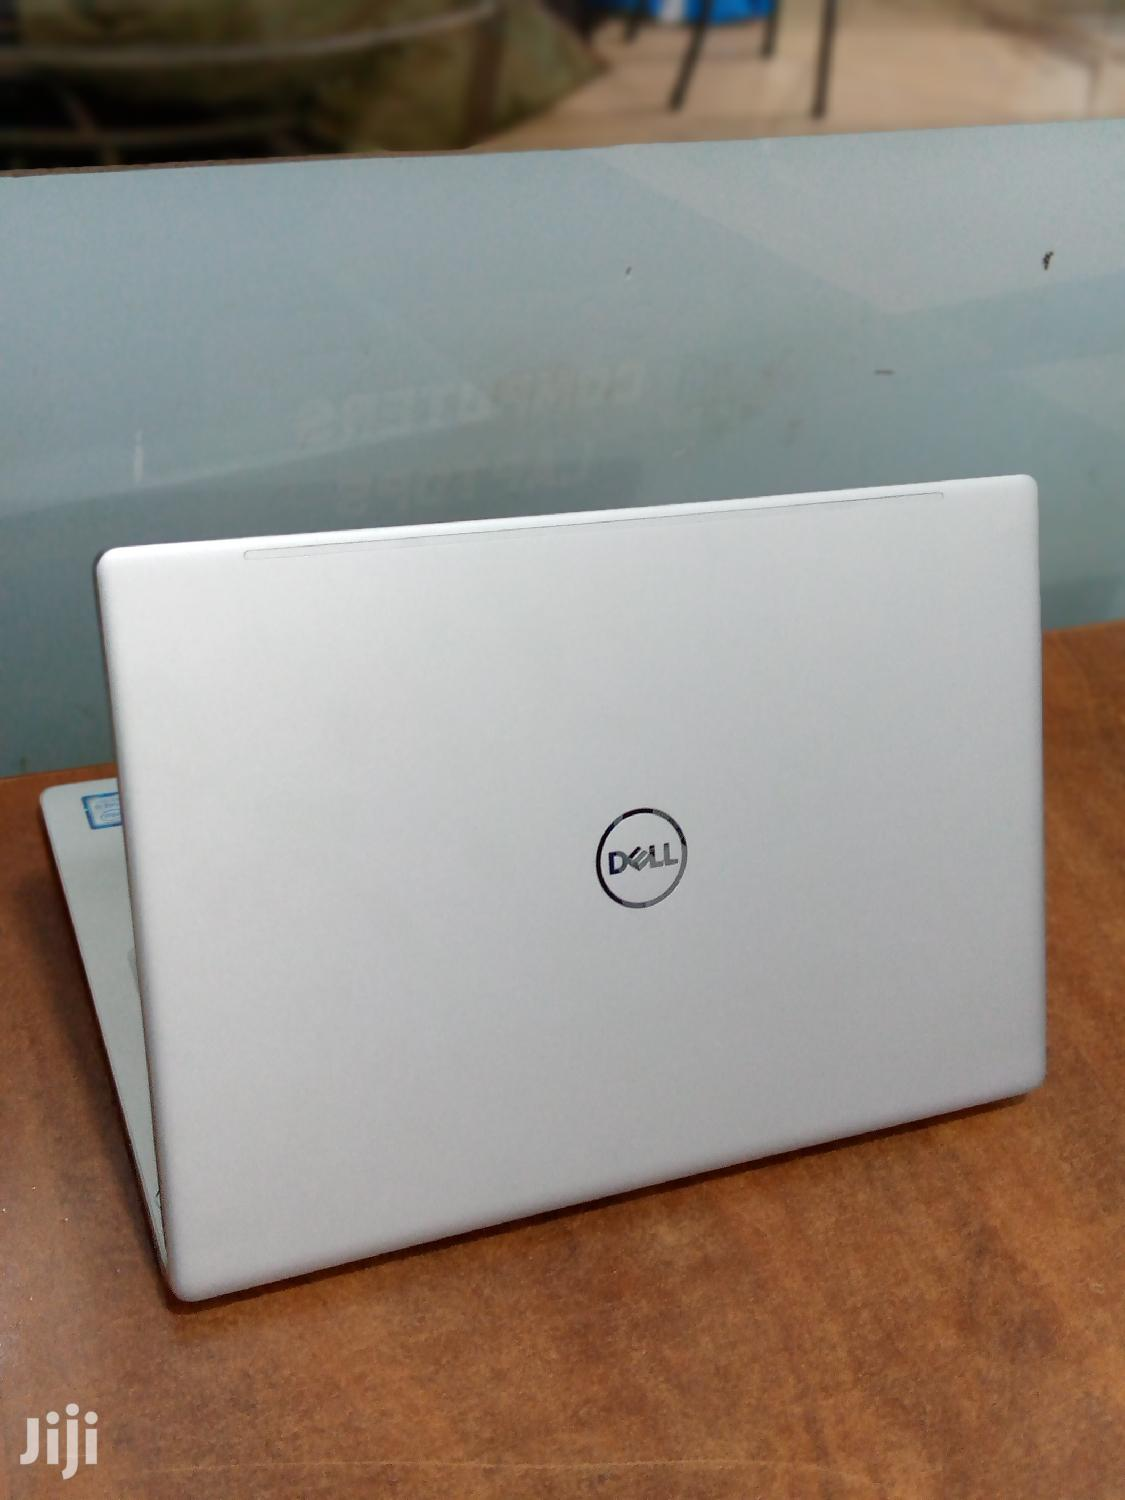 New Laptop Dell Inspiron 13 7000 8GB Intel Core i5 SSD 256GB | Laptops & Computers for sale in Kampala, Central Region, Uganda